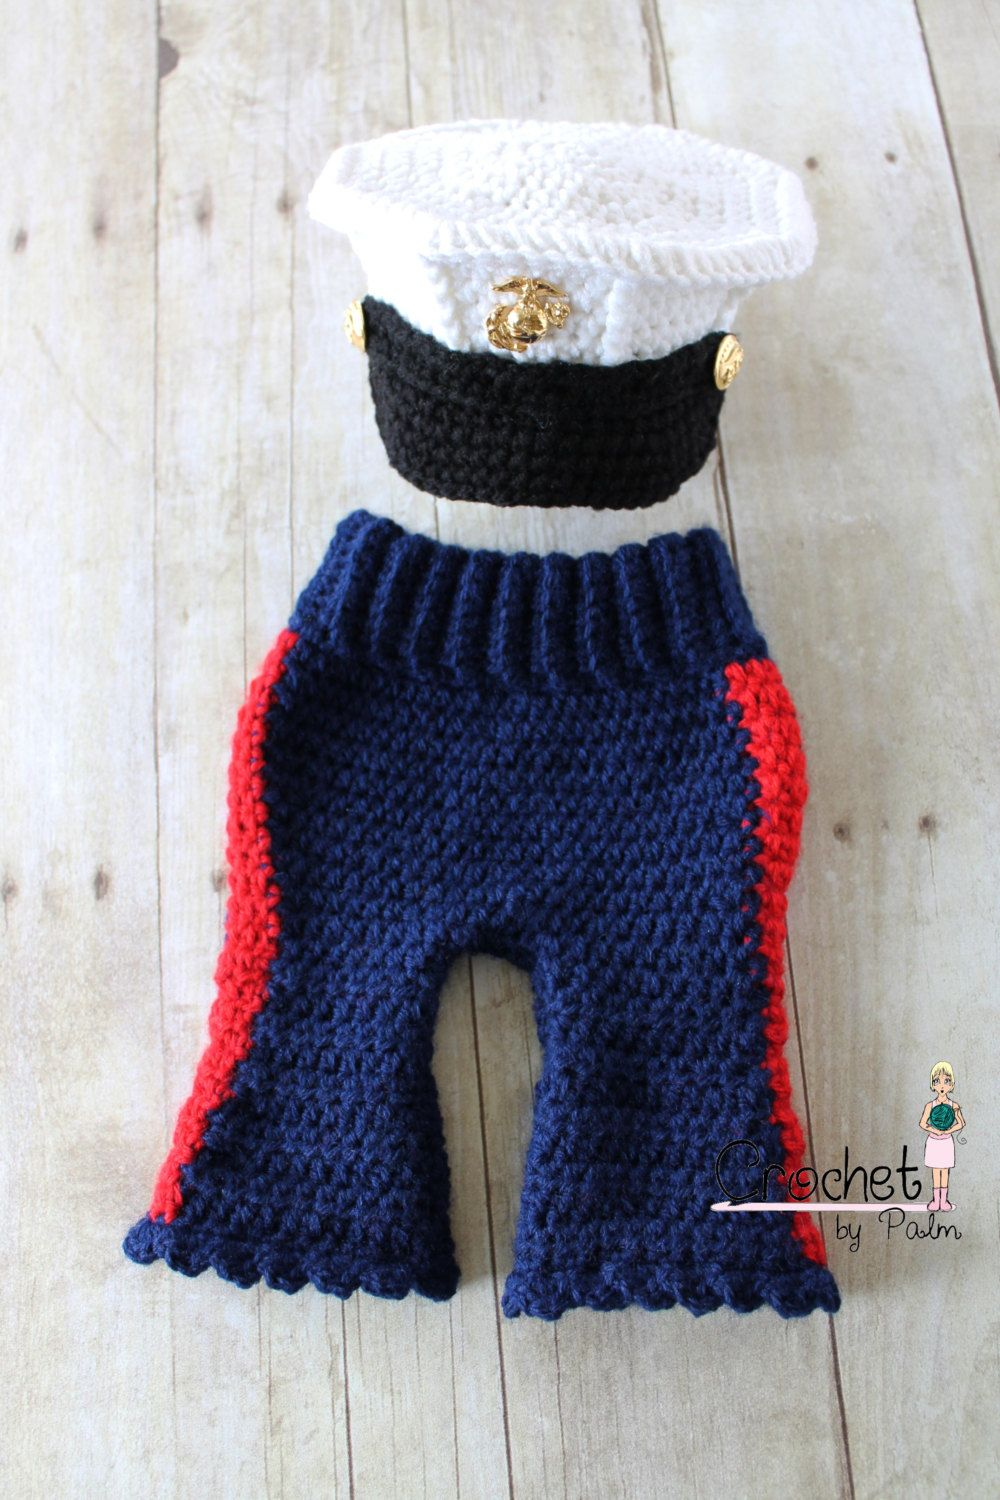 Crochet Marine Corps Blues Cover and Baby Girl Cute Patootie set ...